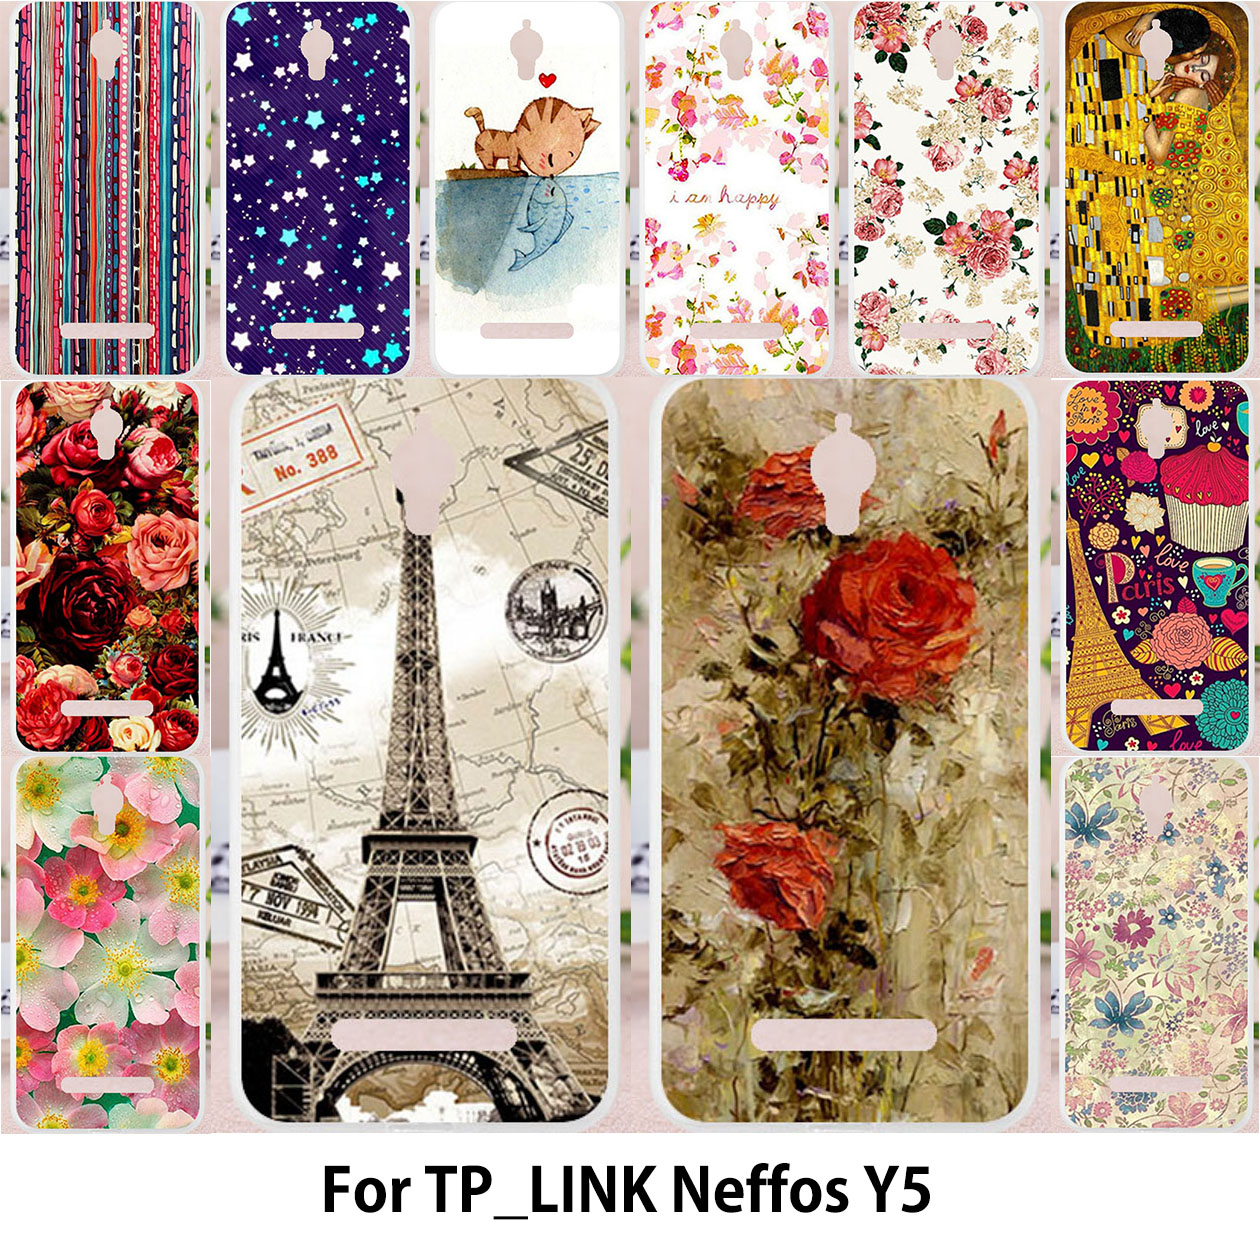 TAOYUNXI For TP-LINK Neffos Y5 TP802A case Silicone Case For TPLINK Neffos Y5 TP LINK Cover Dream Flower Batterfly Tower